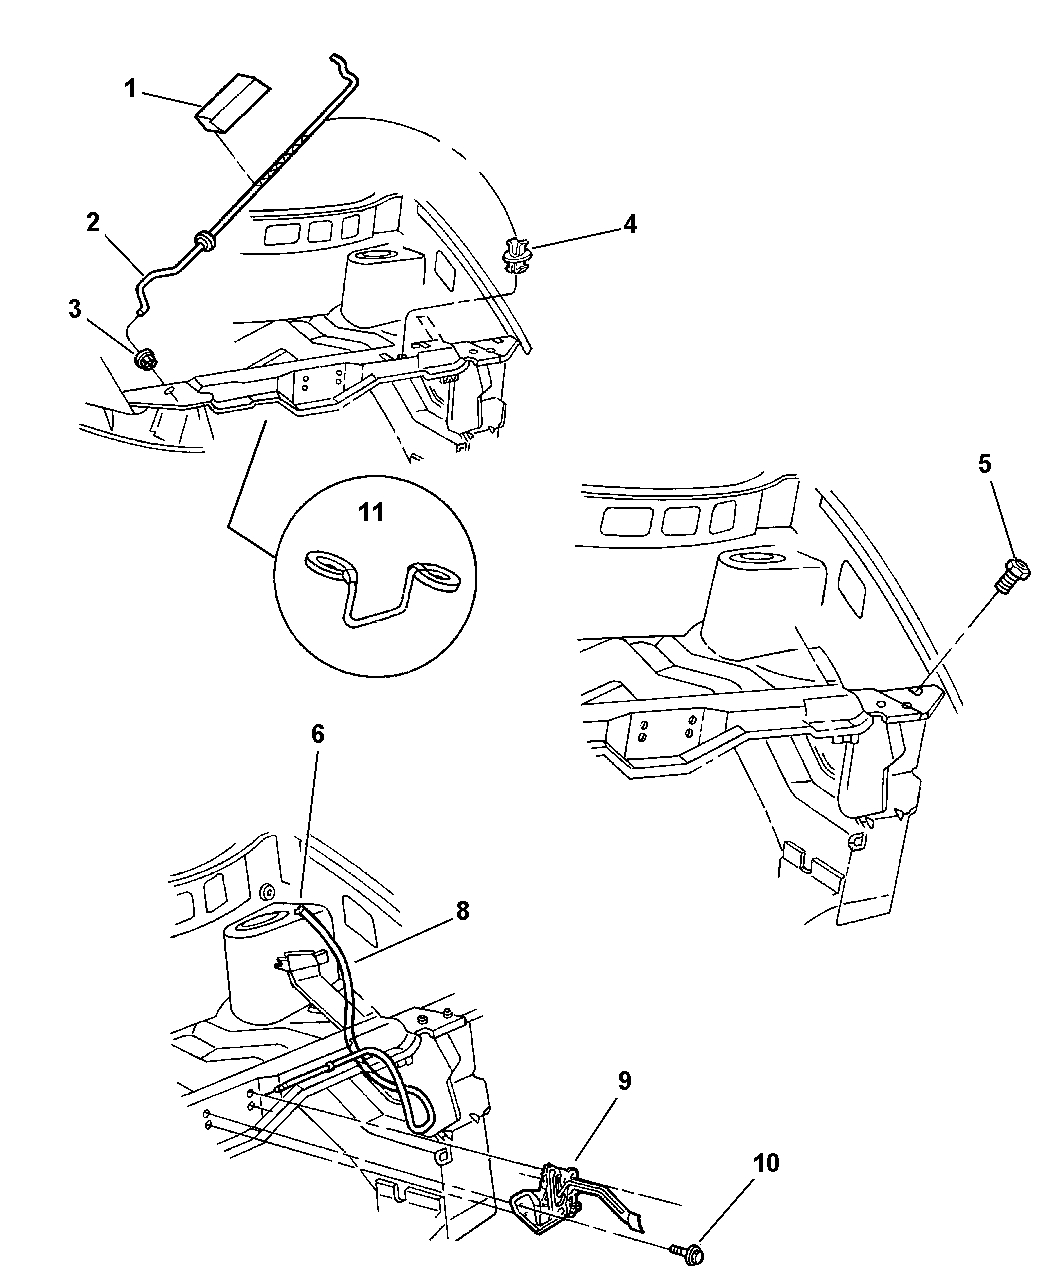 4717480Ab - Genuine Mopar Latch-Hood Latch inside Chrysler Town And Country Parts Diagram